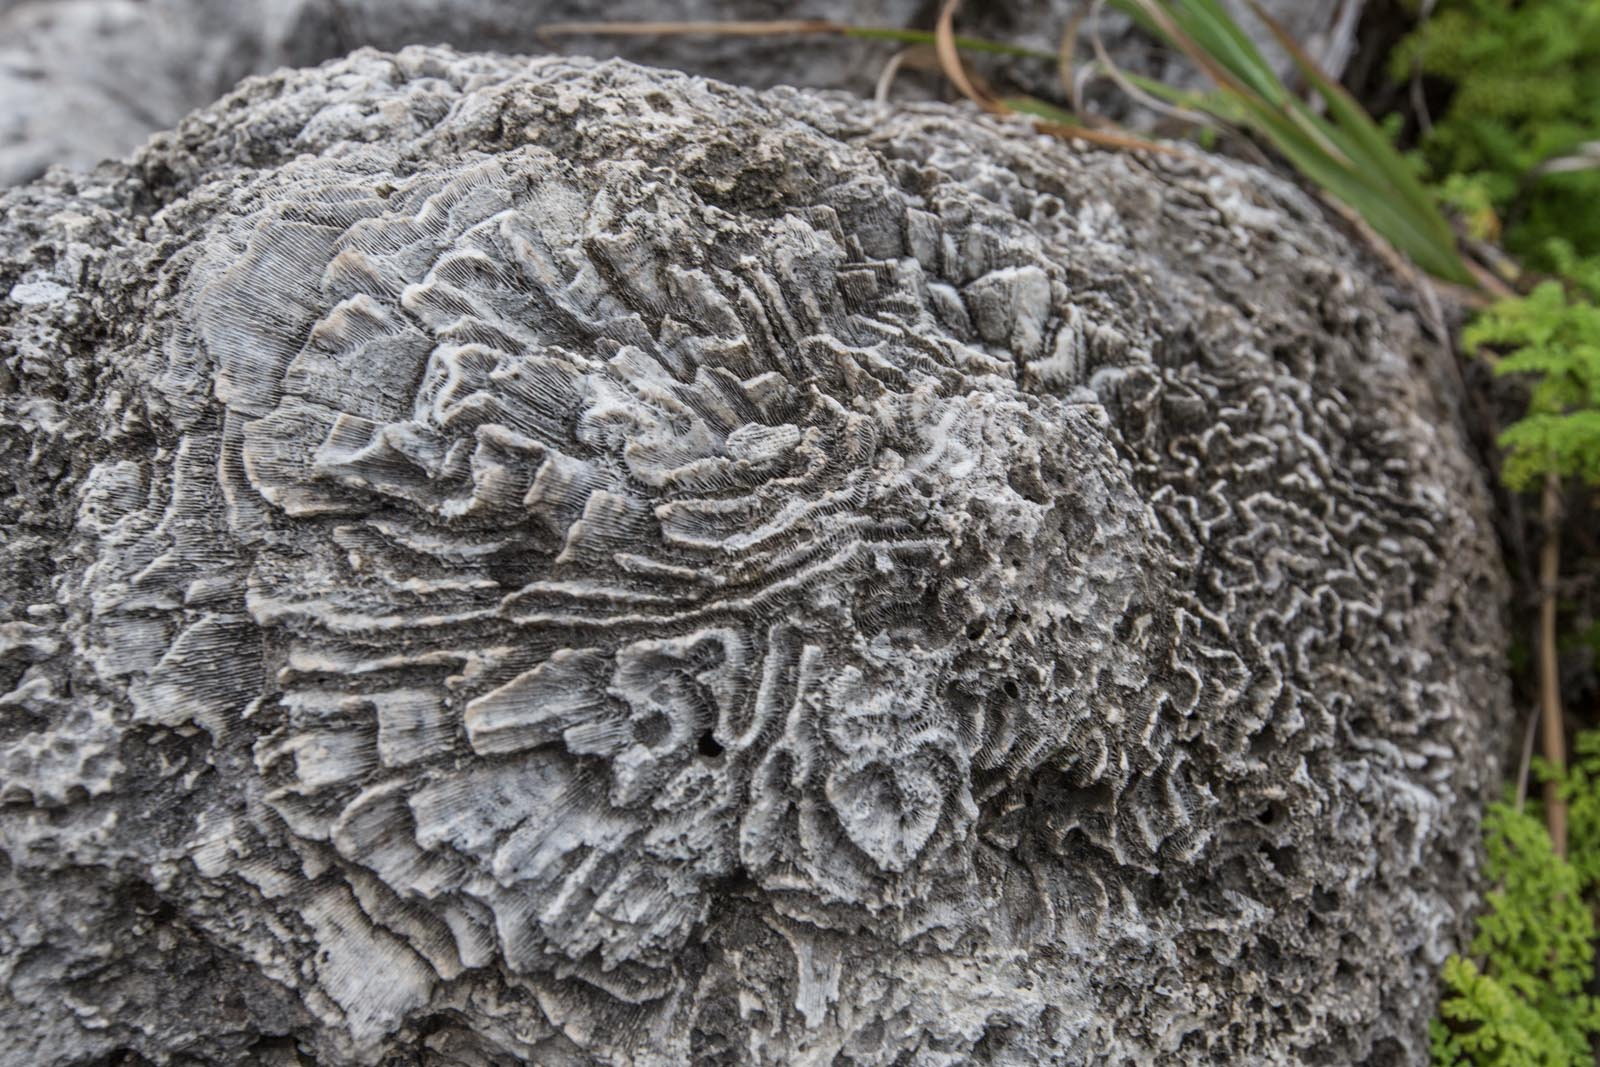 This is how your brain coral looks when its dead. Looks cool underwater too.